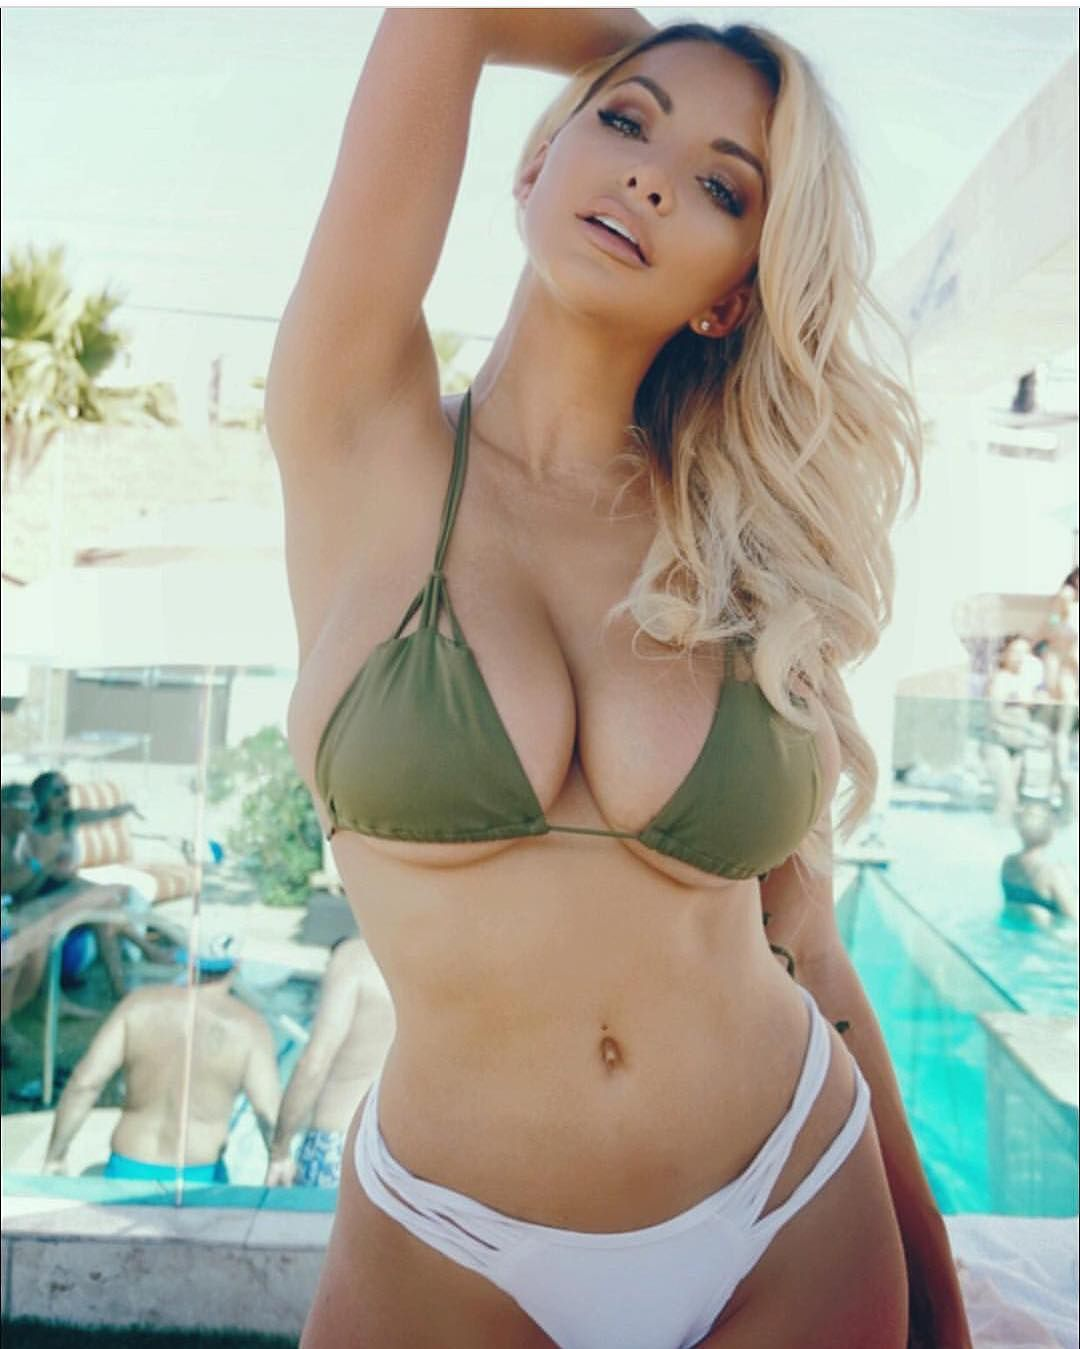 Images Puma Swede nudes (79 photos), Topless, Fappening, Boobs, swimsuit 2015